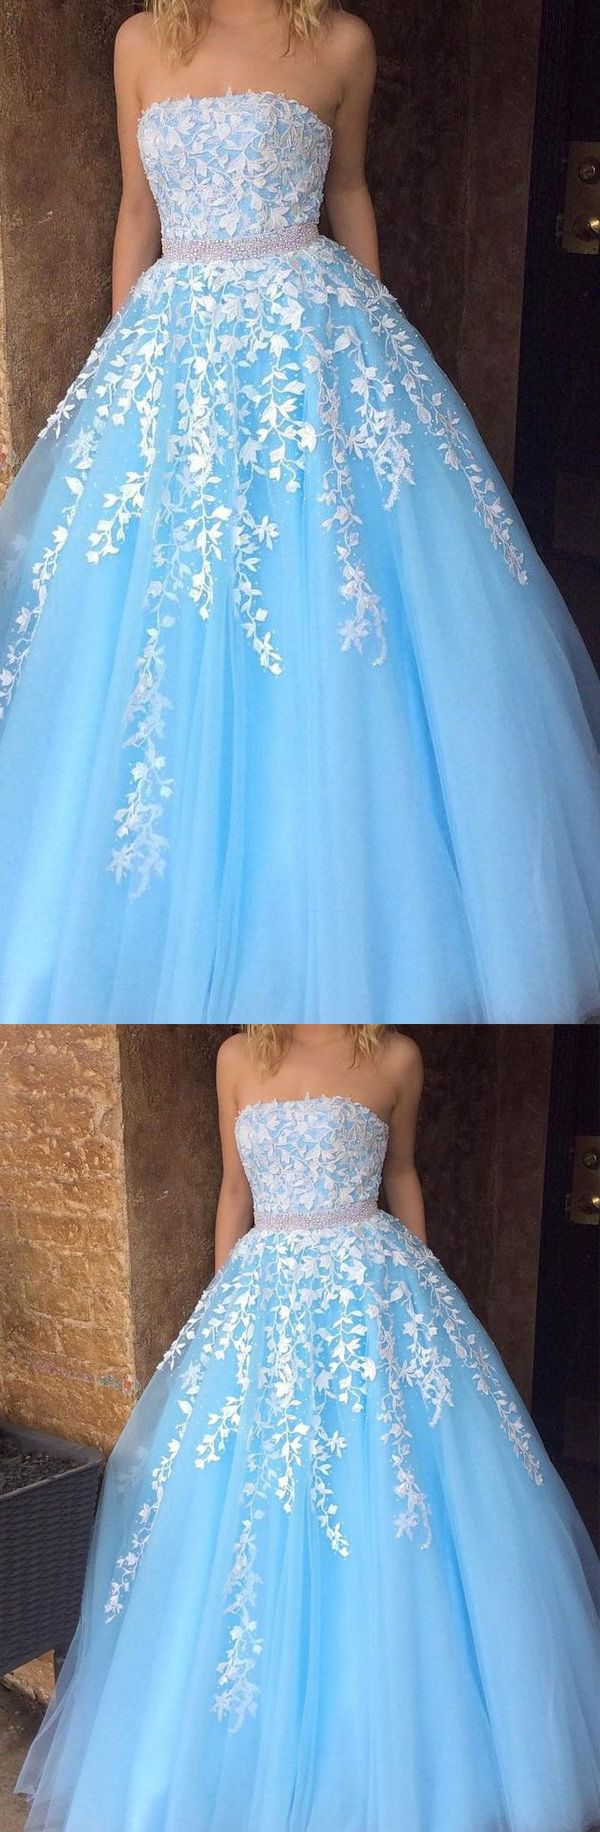 Fashion white lace sky blue tulle strapess prom dresses evening